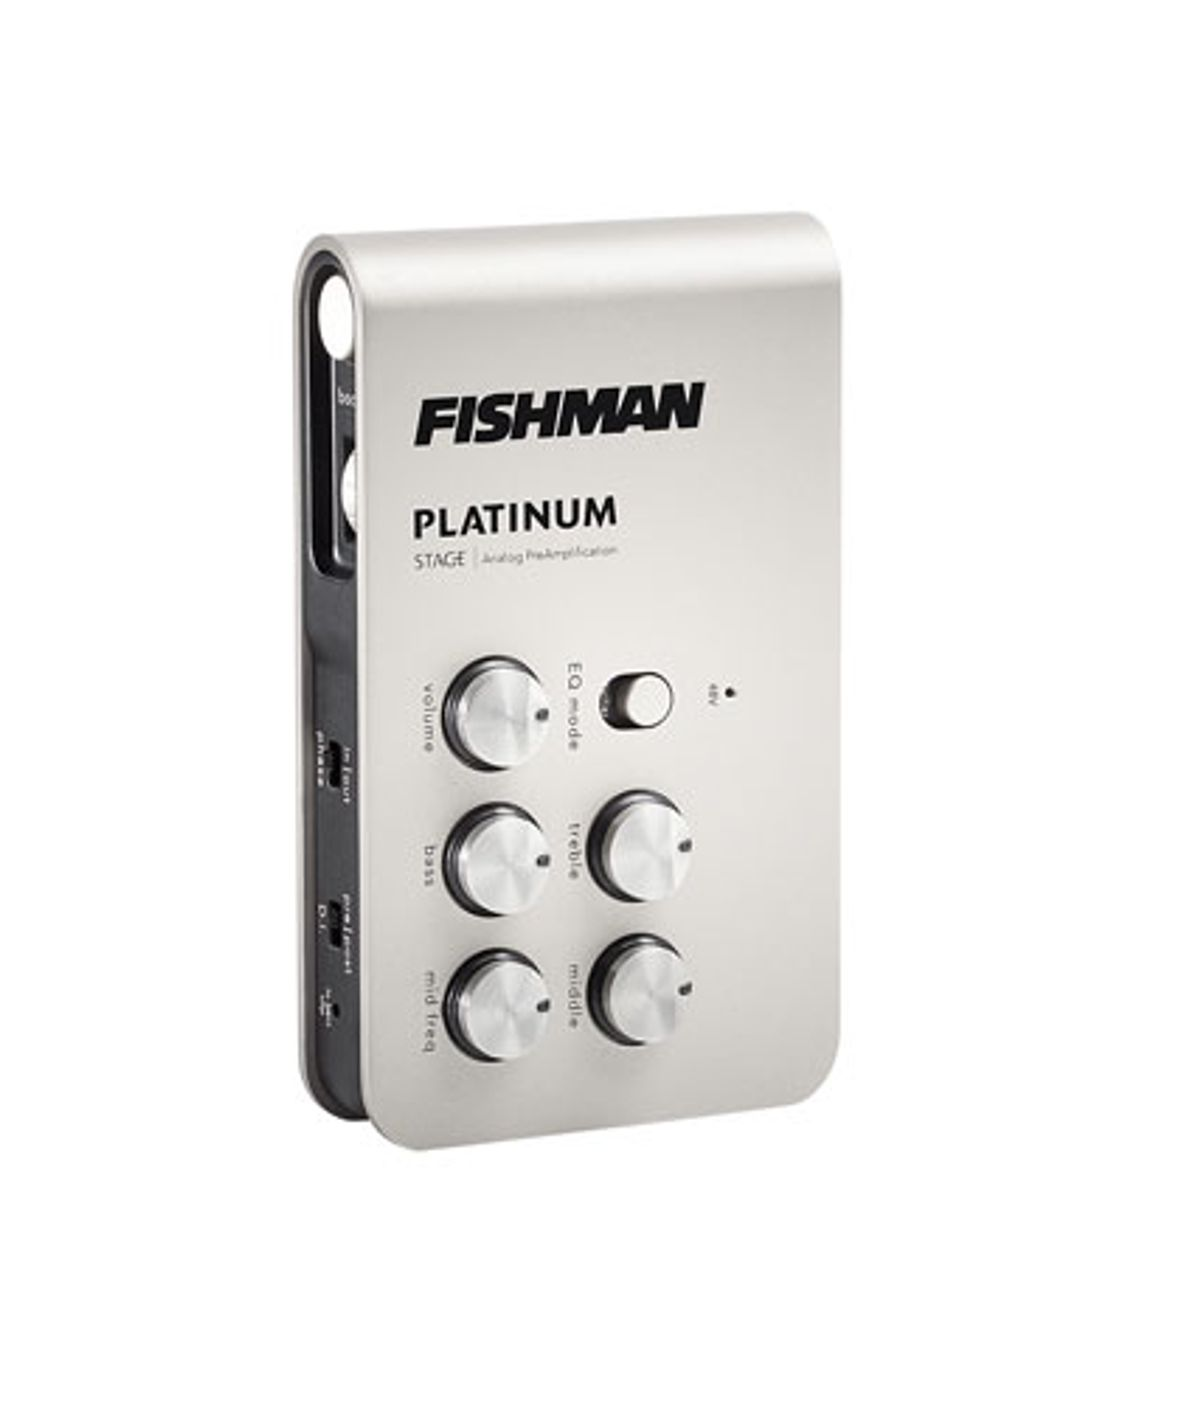 Fishman Releases the Platinum Pro EQ and Platinum Stage Acoustic Preamps